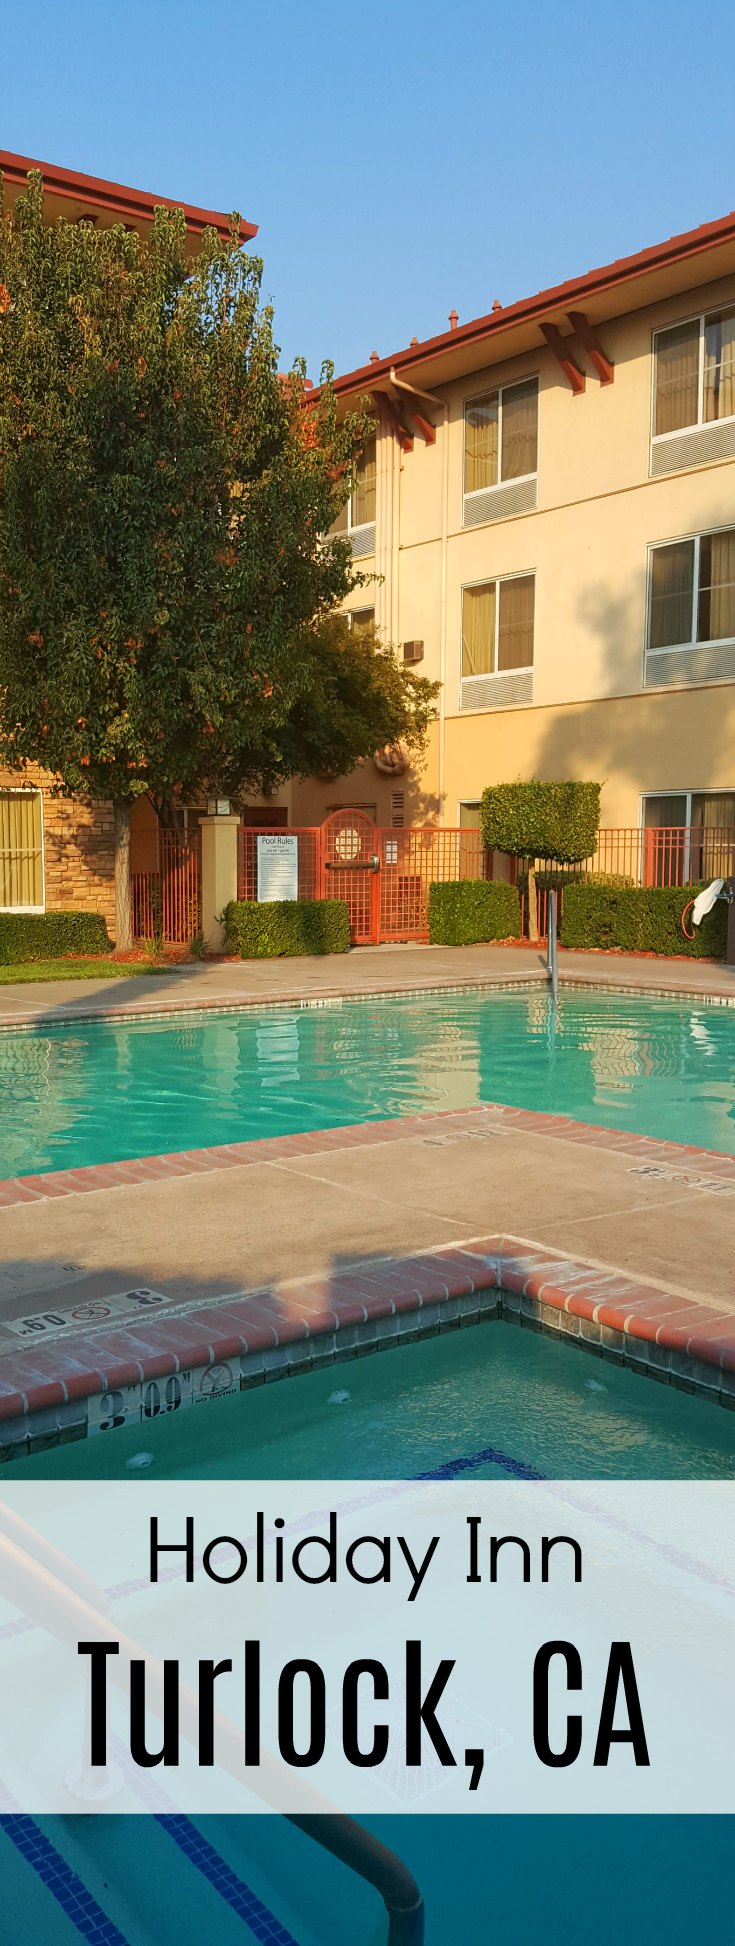 Holiday Inn Express and Suites in Turlock - Where to stay when you travel on Highway 99 in California